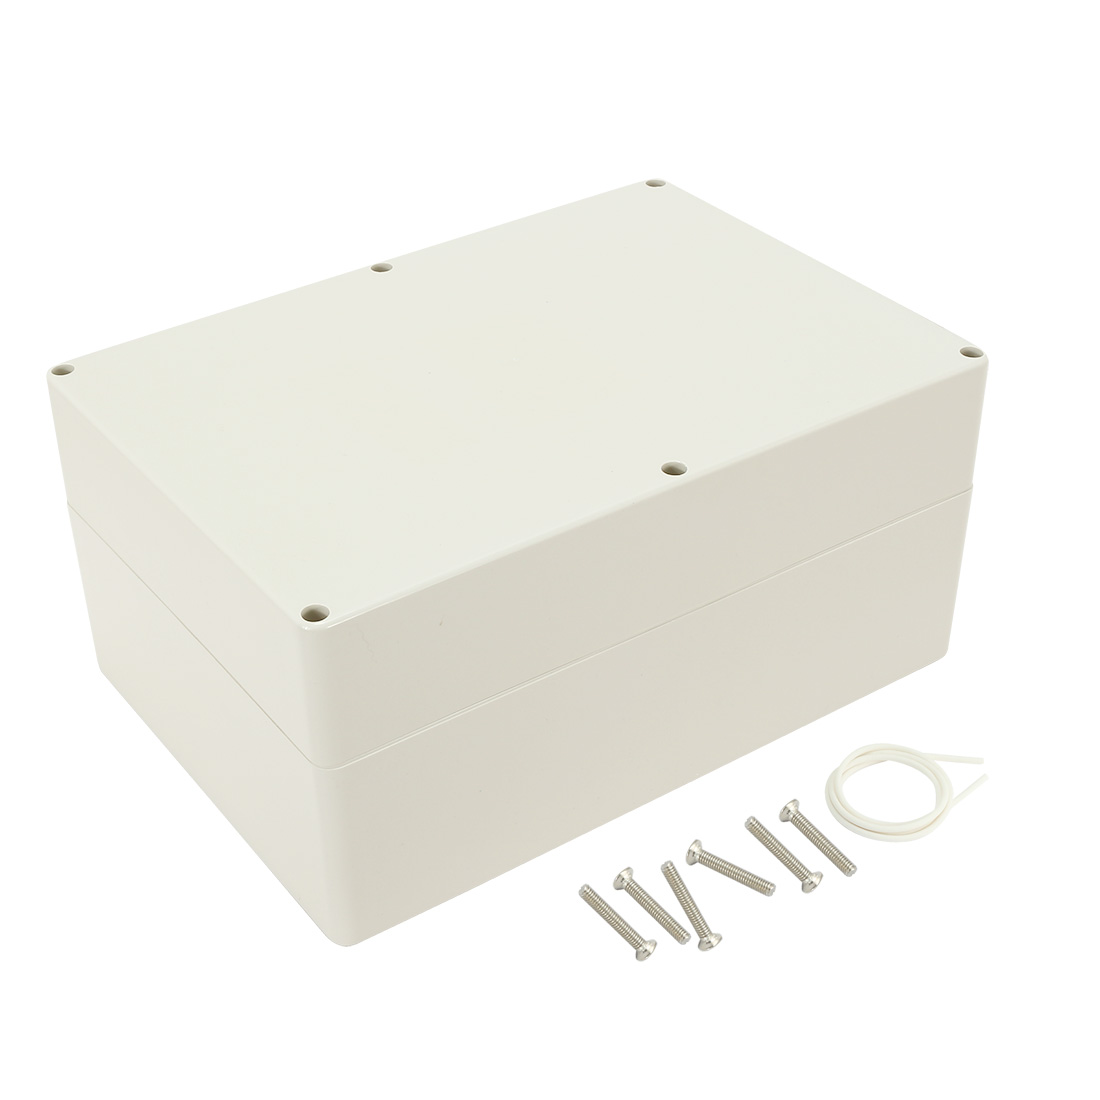 """10.4""""x7.2""""x4.9"""" ABS Junction Box Universal Electric Project Enclosure"""